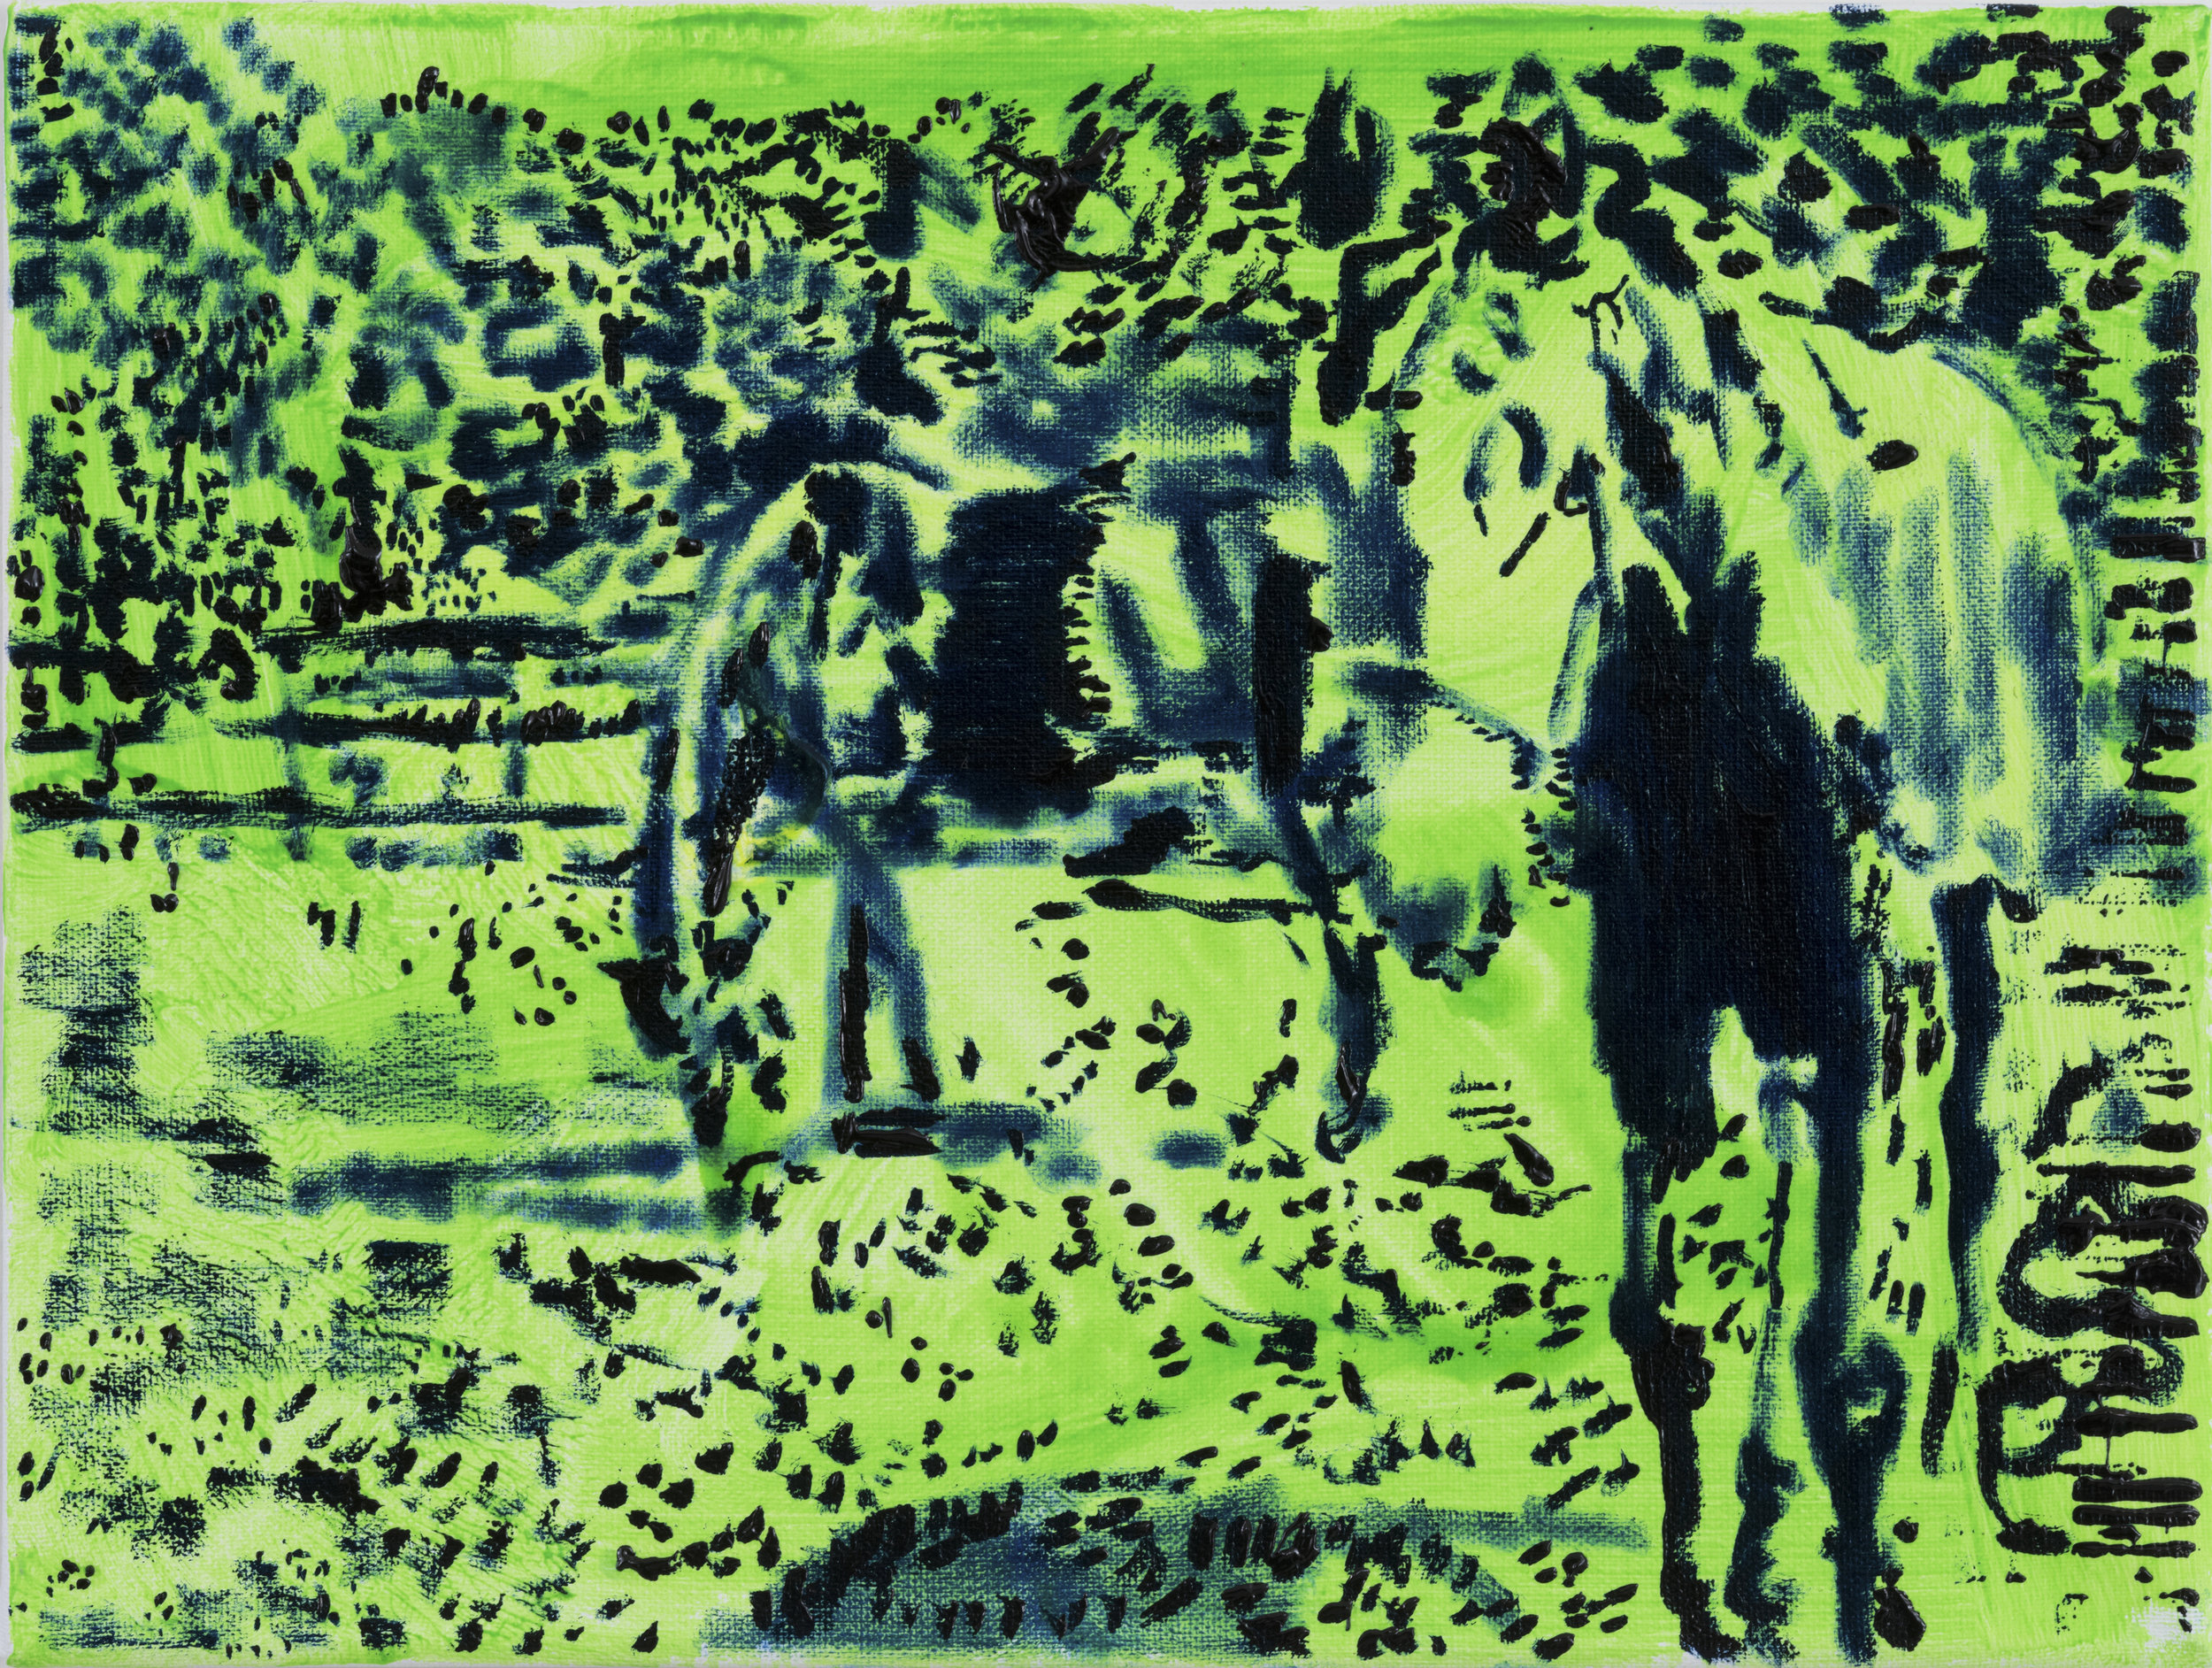 Neon Horse 1 (small)  oil and acrylic on canvas  9 x 12 inches  2019